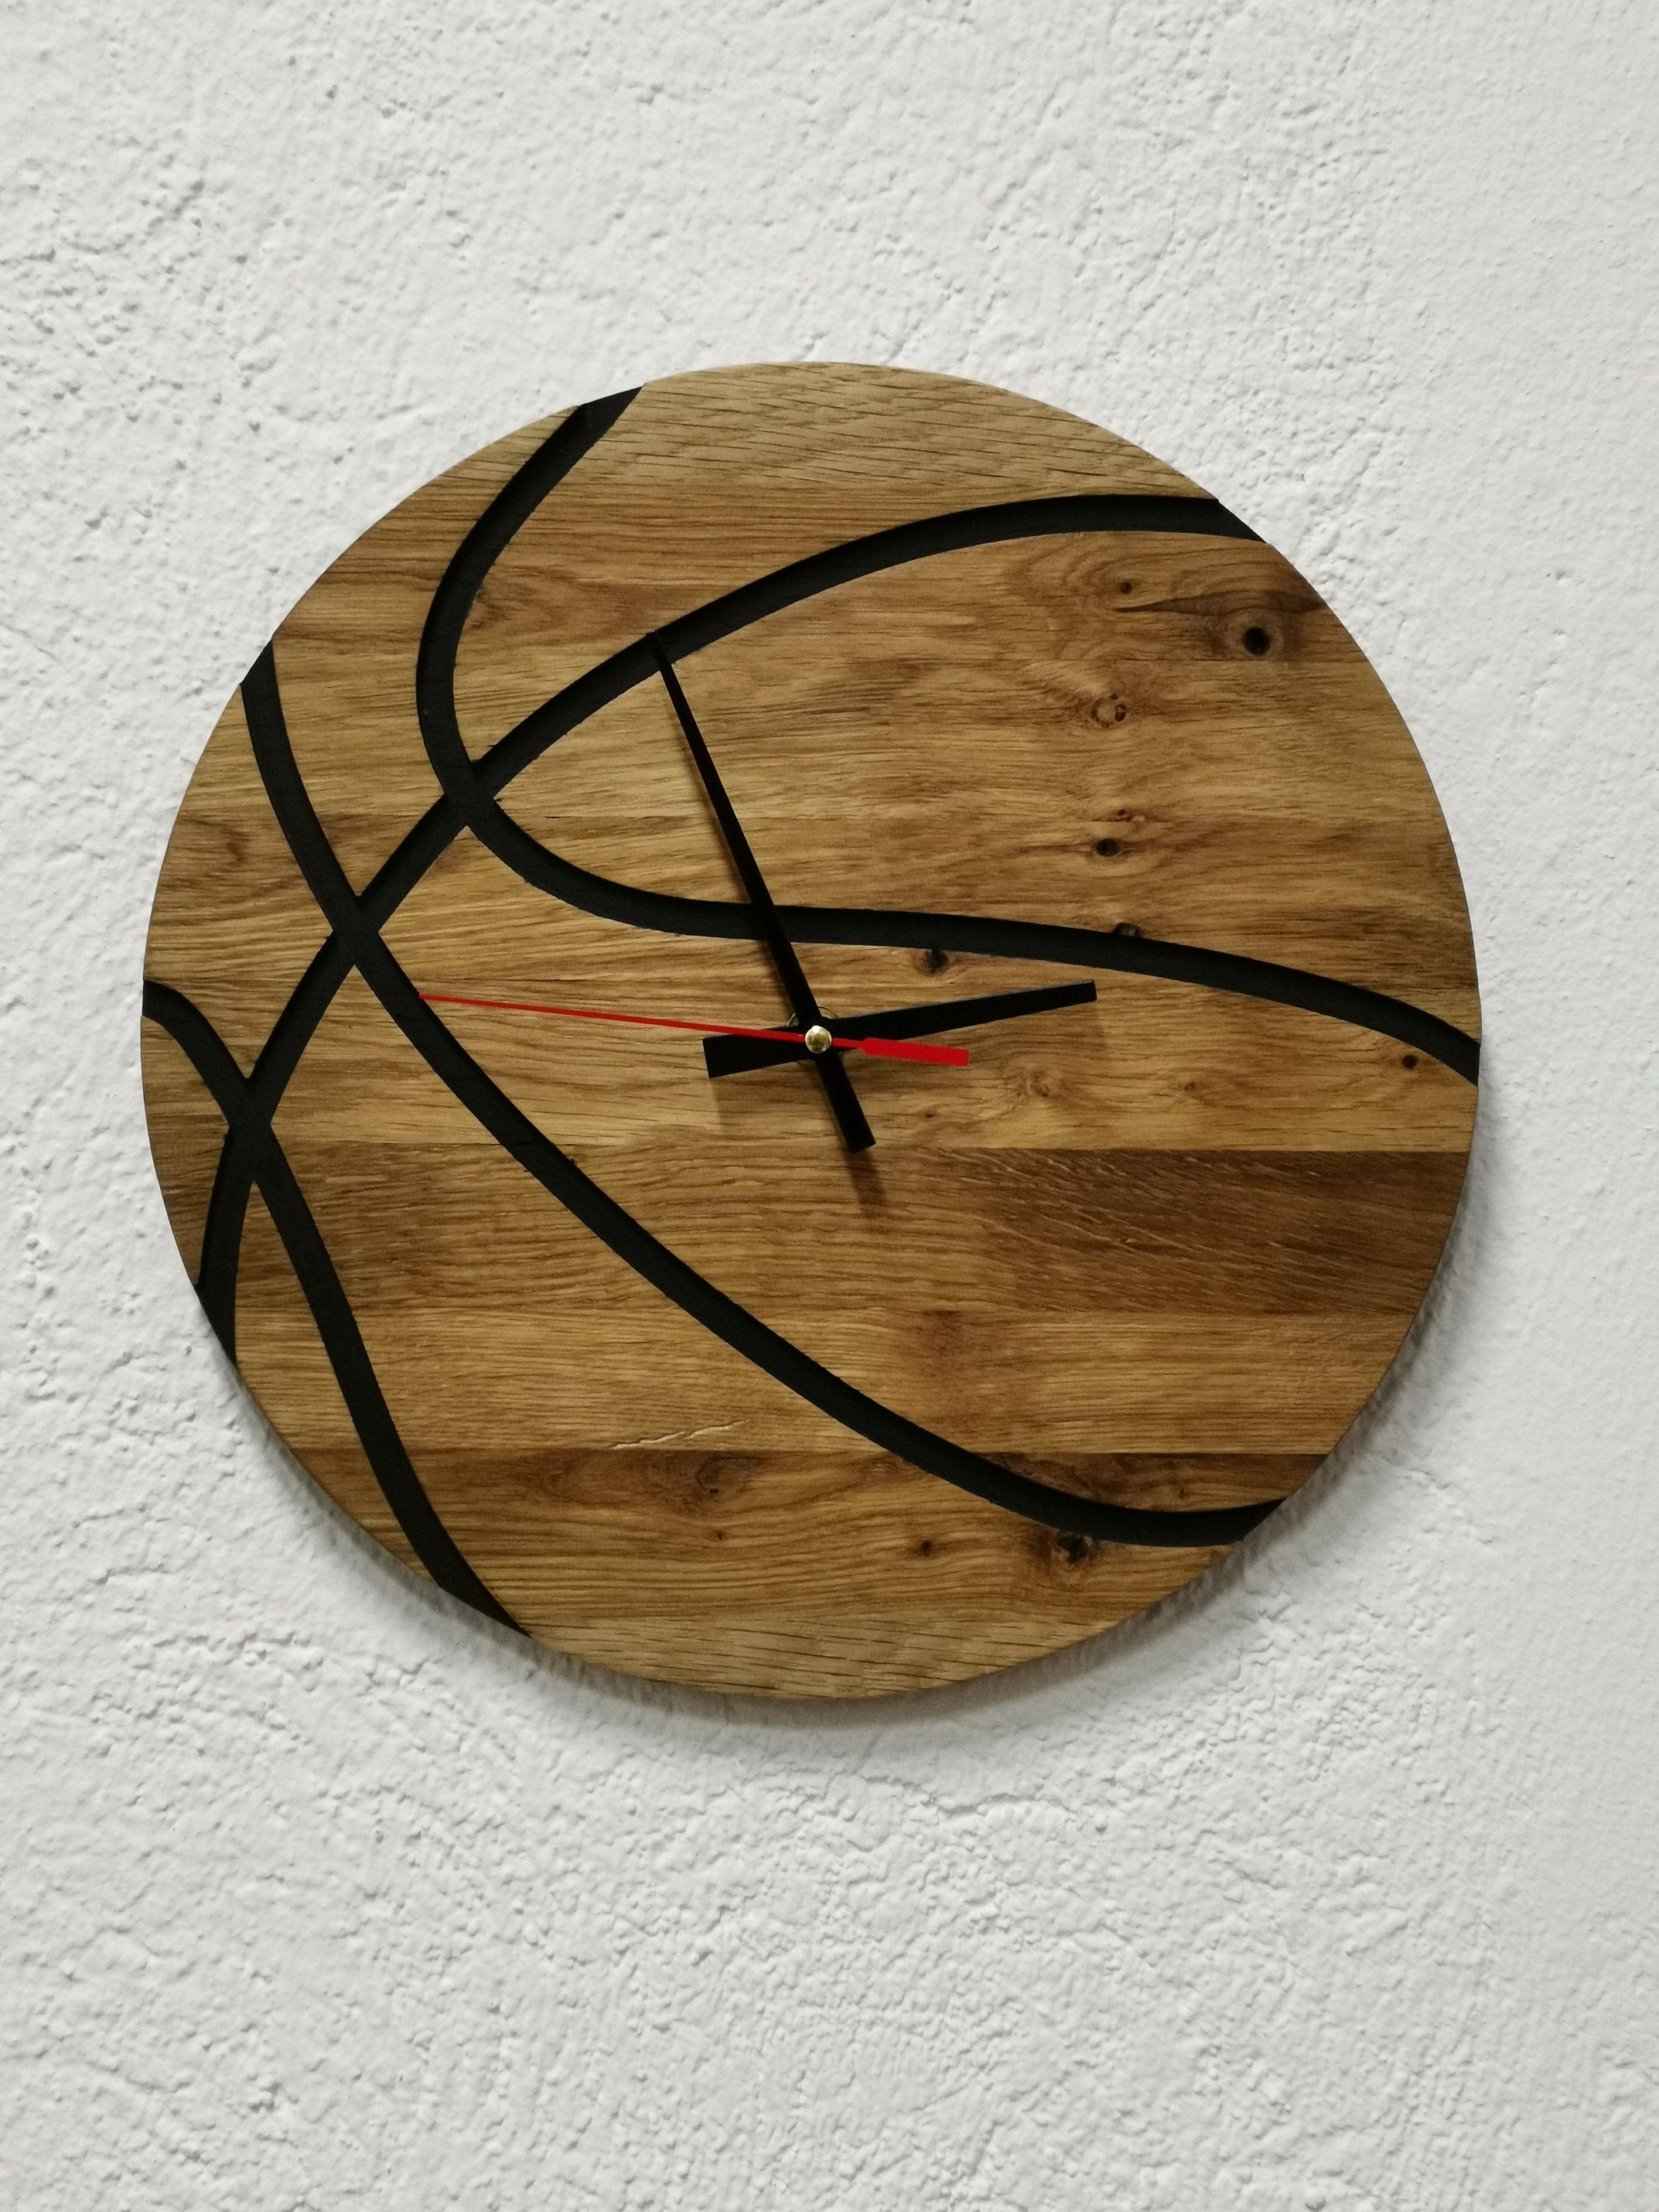 11 Basketball Handmade Wooden Wall Clock Oak Wood Round Clock Rustic Contemporary Clock Wall Art Home Office Living Room Sport In 2020 Wooden Walls Wall Clock Oak Clock Wall Decor